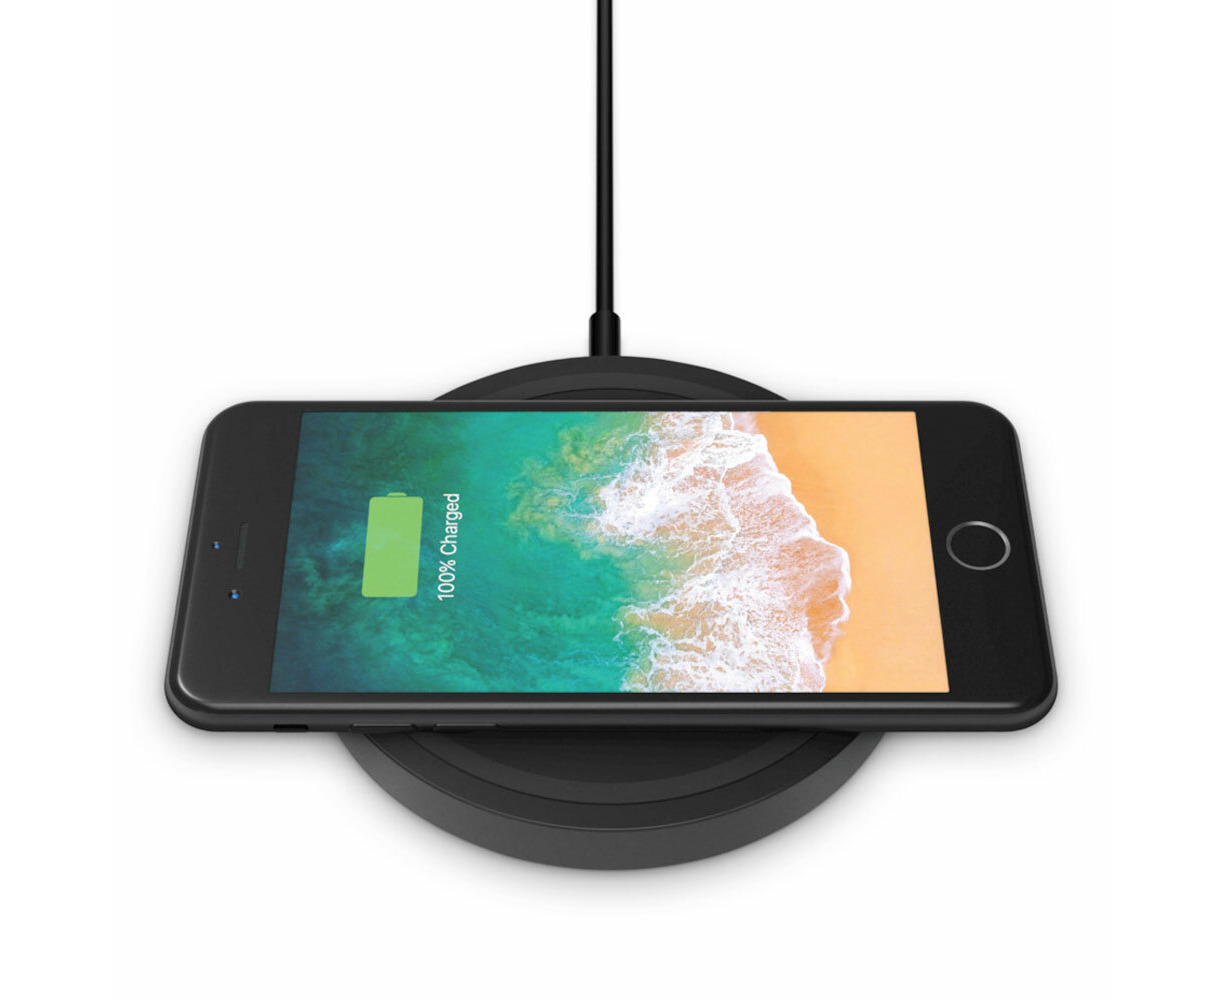 Belkin Wireless Charging Pad | Gifts for Dad | Beanstalk Mums